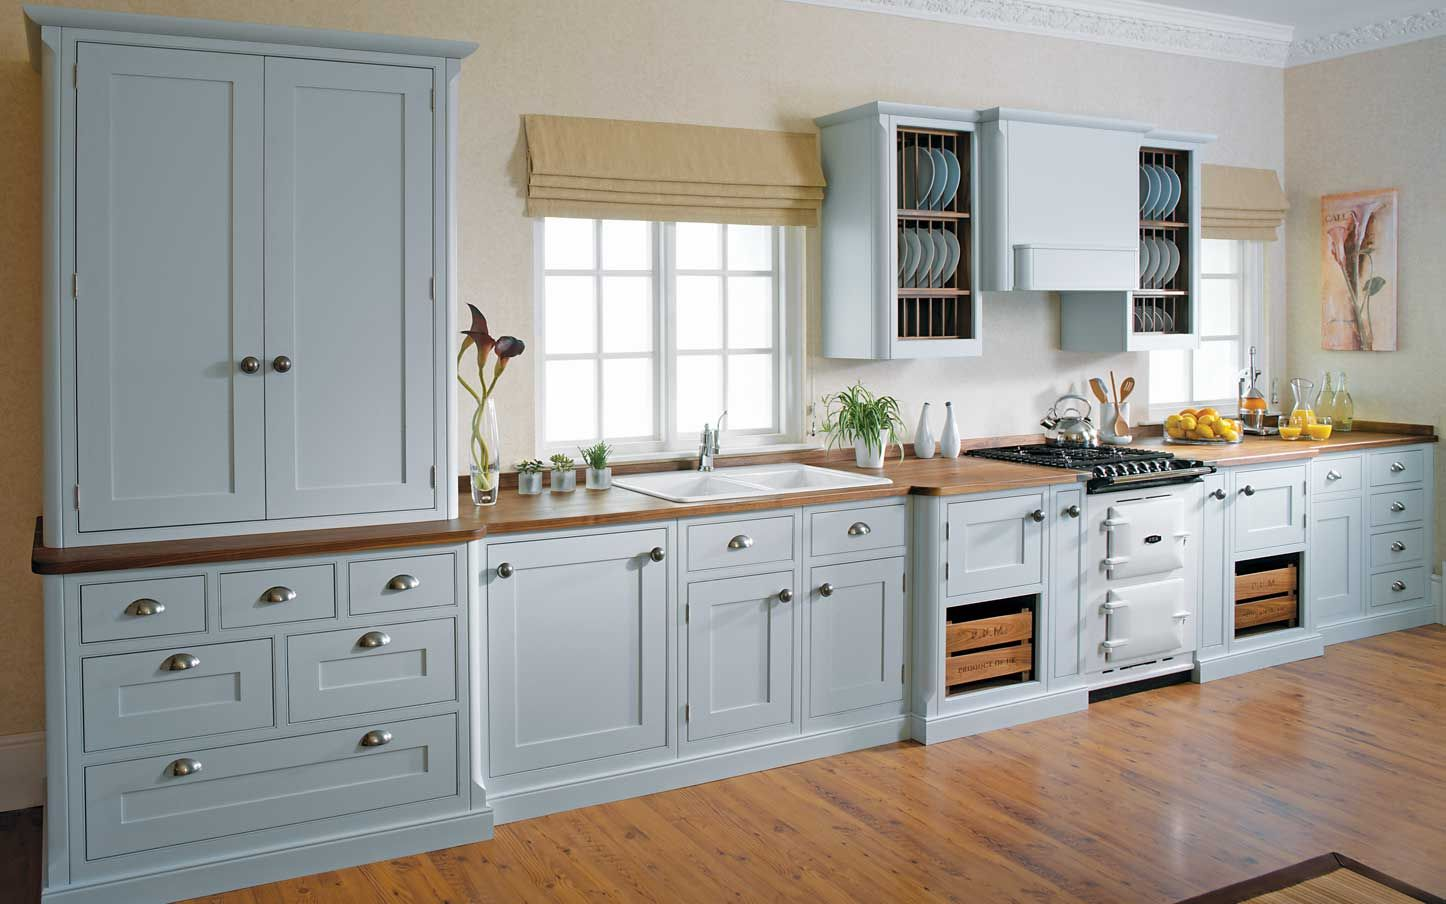 Pale Blue Cleveland - In-Frame traditional kitchen | Traditional ...